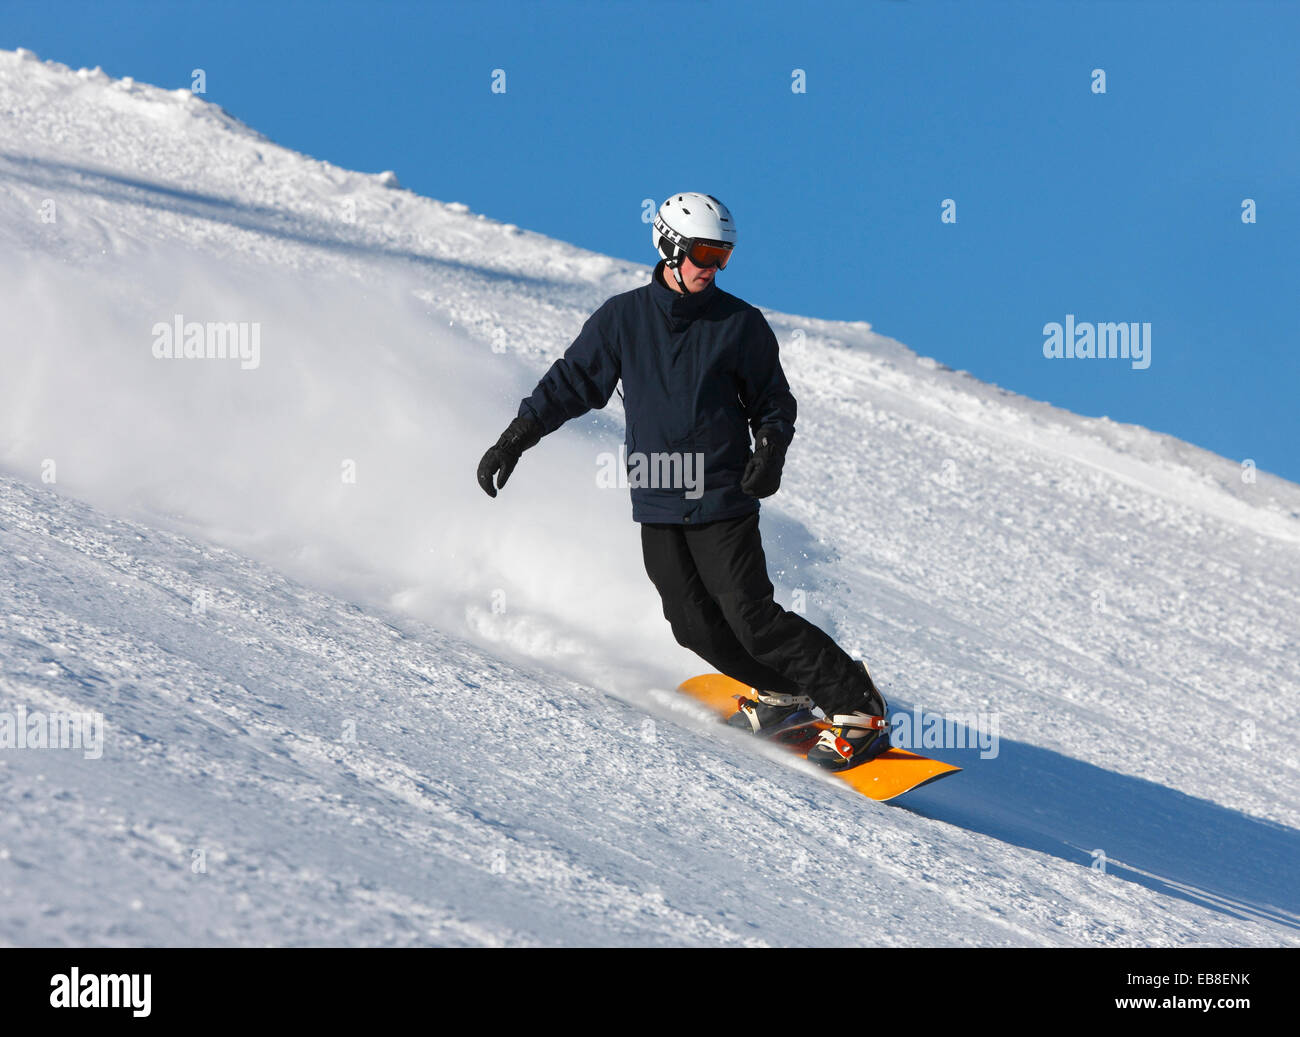 Snowboarder downhill - Stock Image